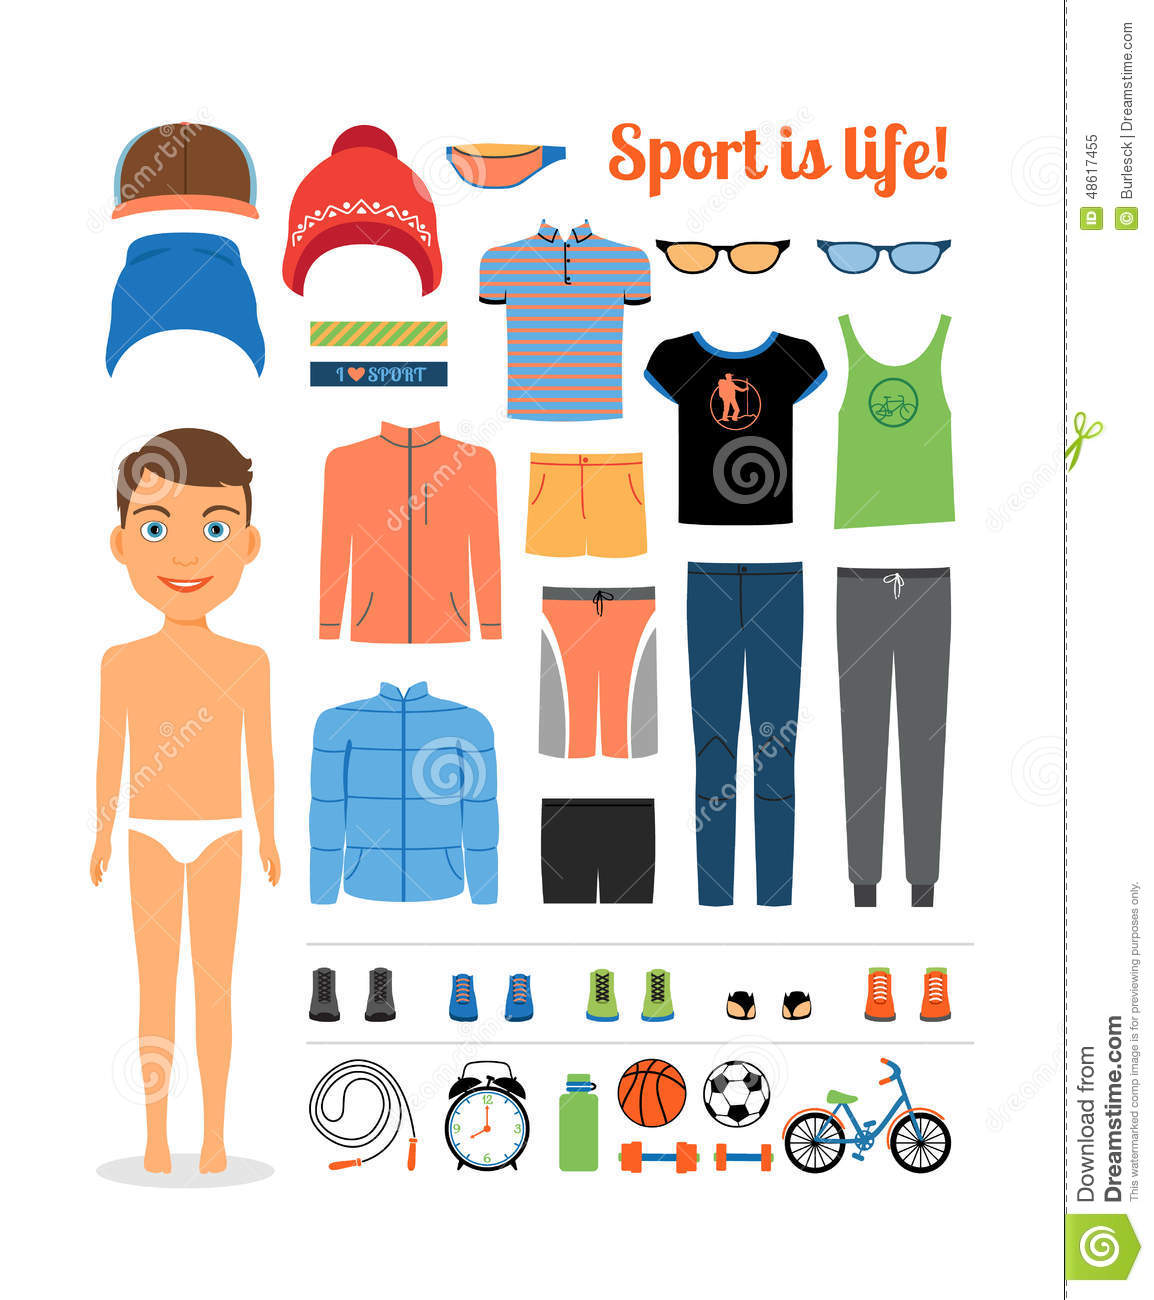 Sport Boy. Clothing And Sports Equipment-Sport boy. Clothing and sports equipment for-5